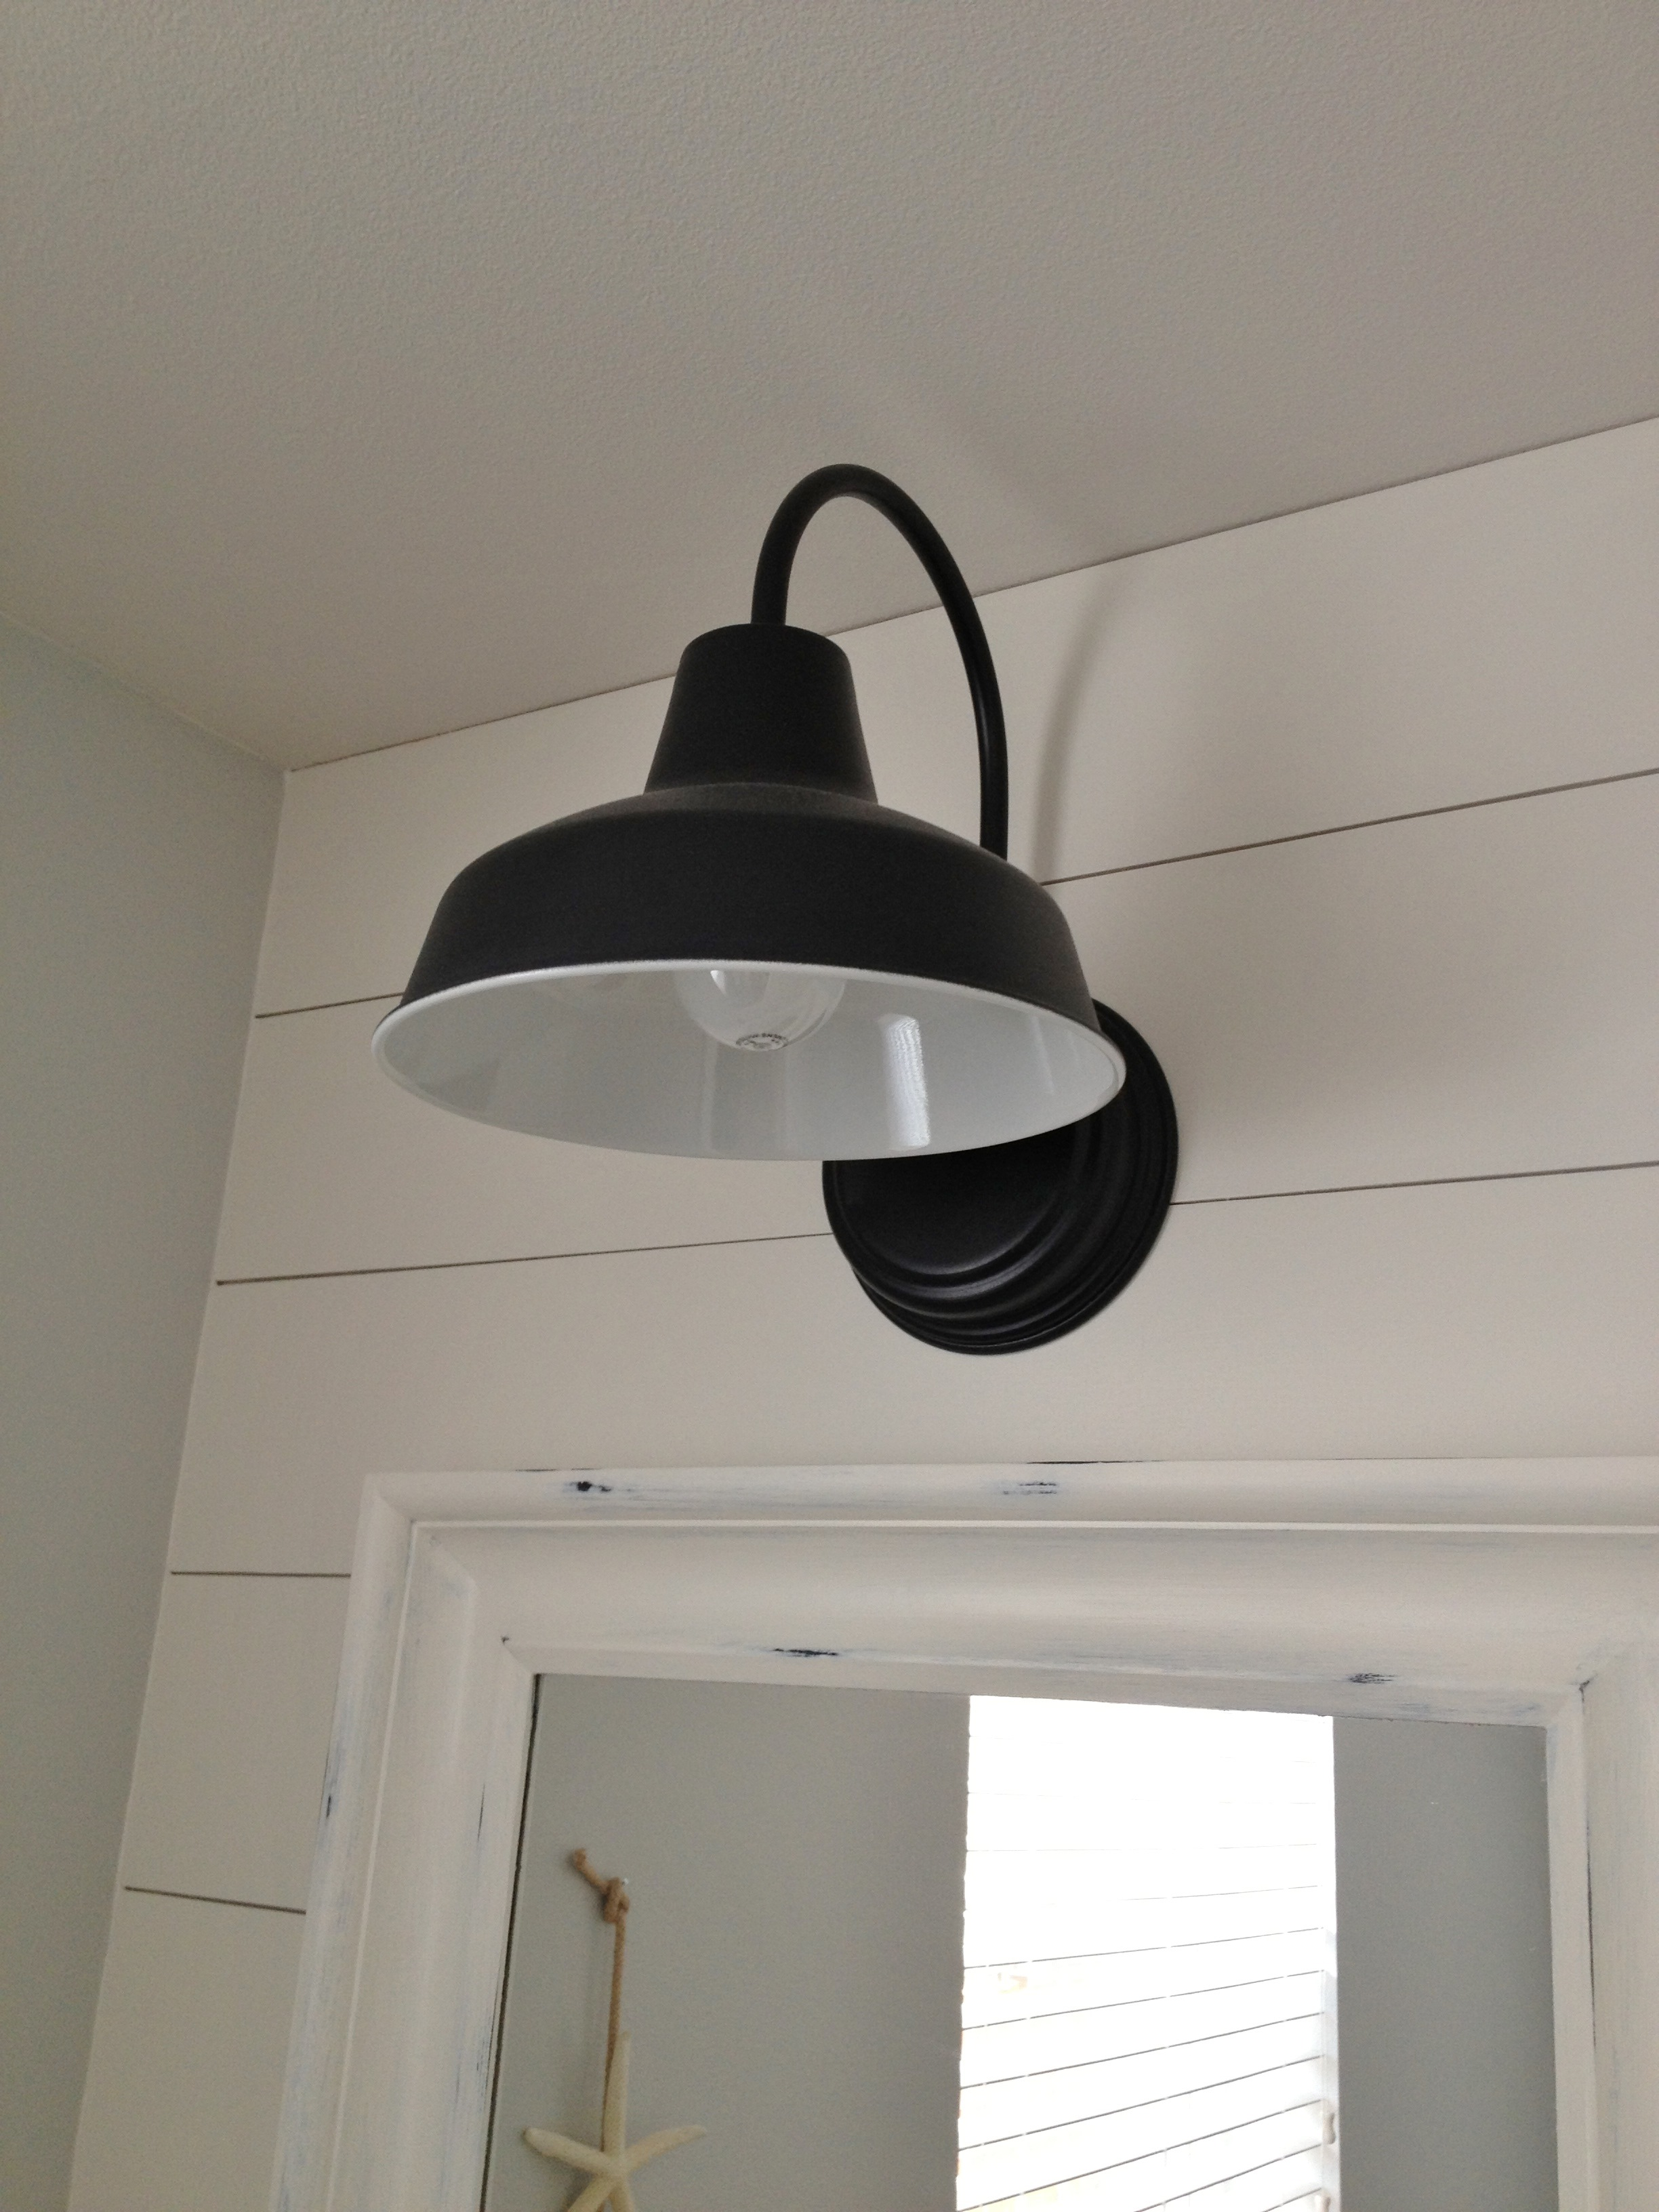 Farmhouse Bathroom Wall Sconces : Barn Wall Sconce Lends Farmhouse Look to Powder Room Remake Blog BarnLightElectric.com